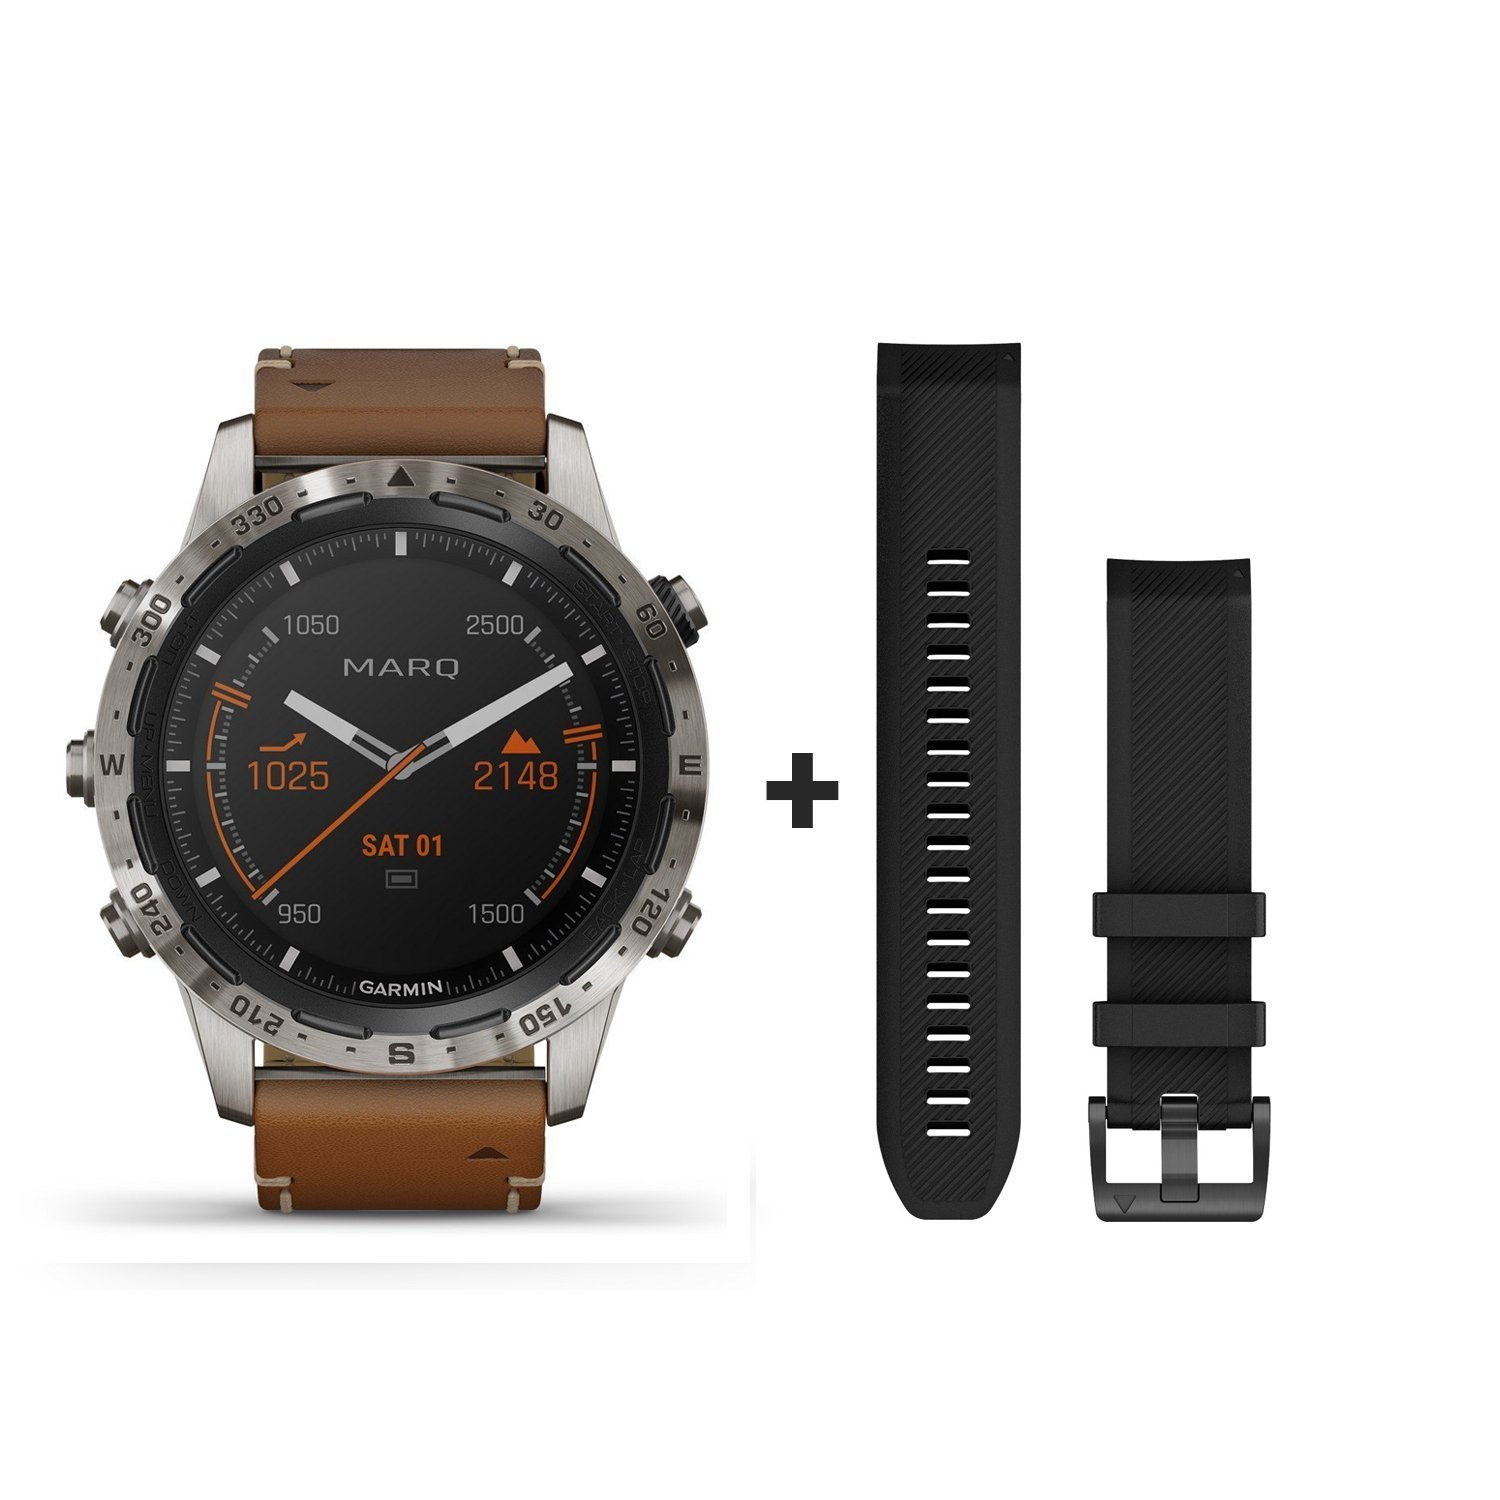 Montre Garmin Marq Expedition vue 1